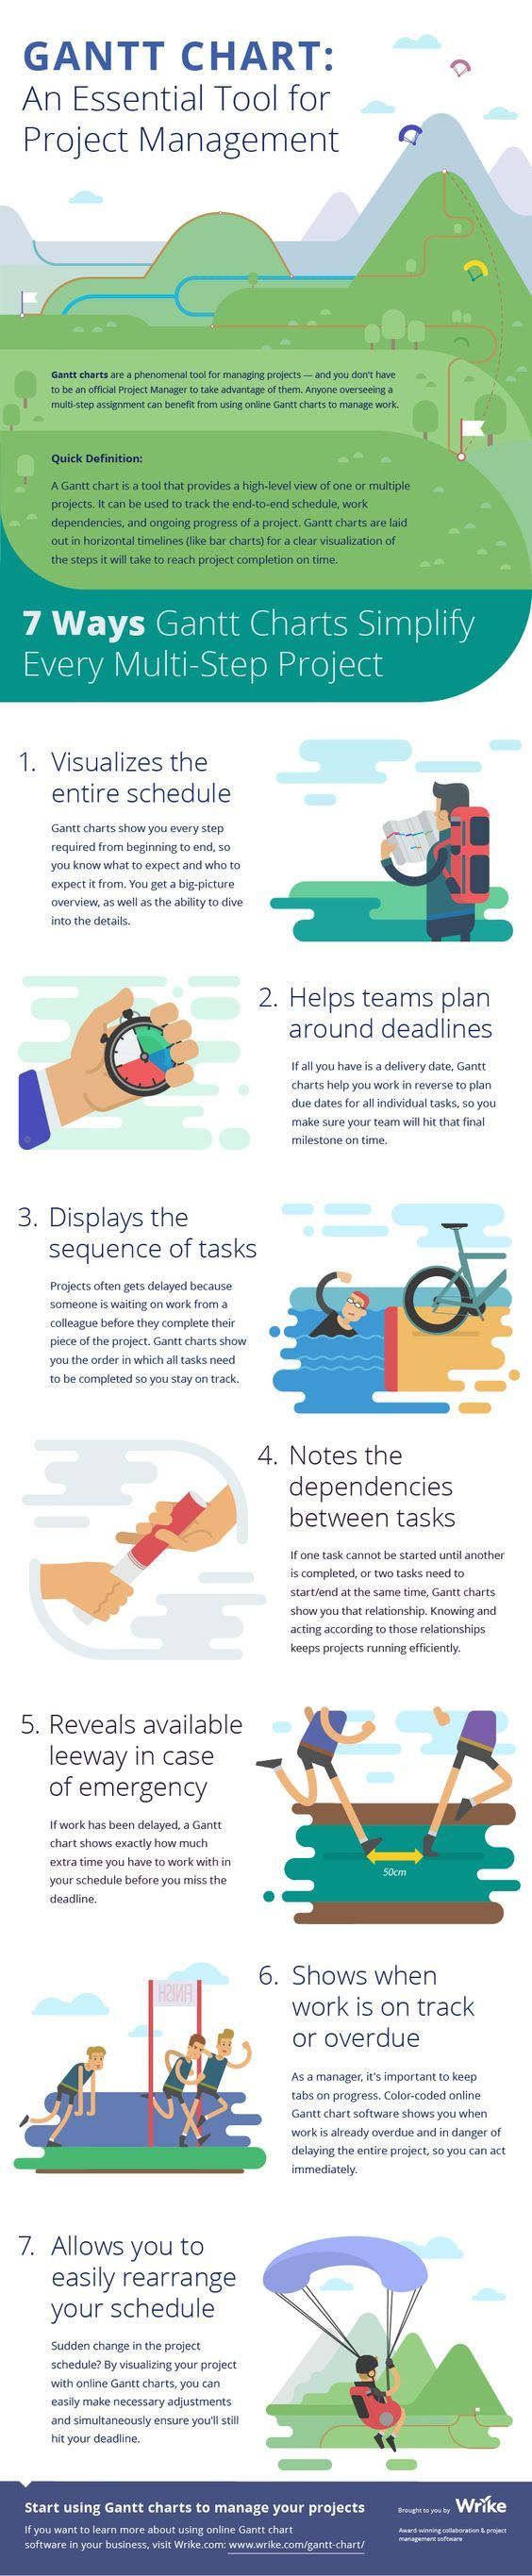 21 best project management images on pinterest project gantt chart software a key tool for project management 1betcityfo Image collections